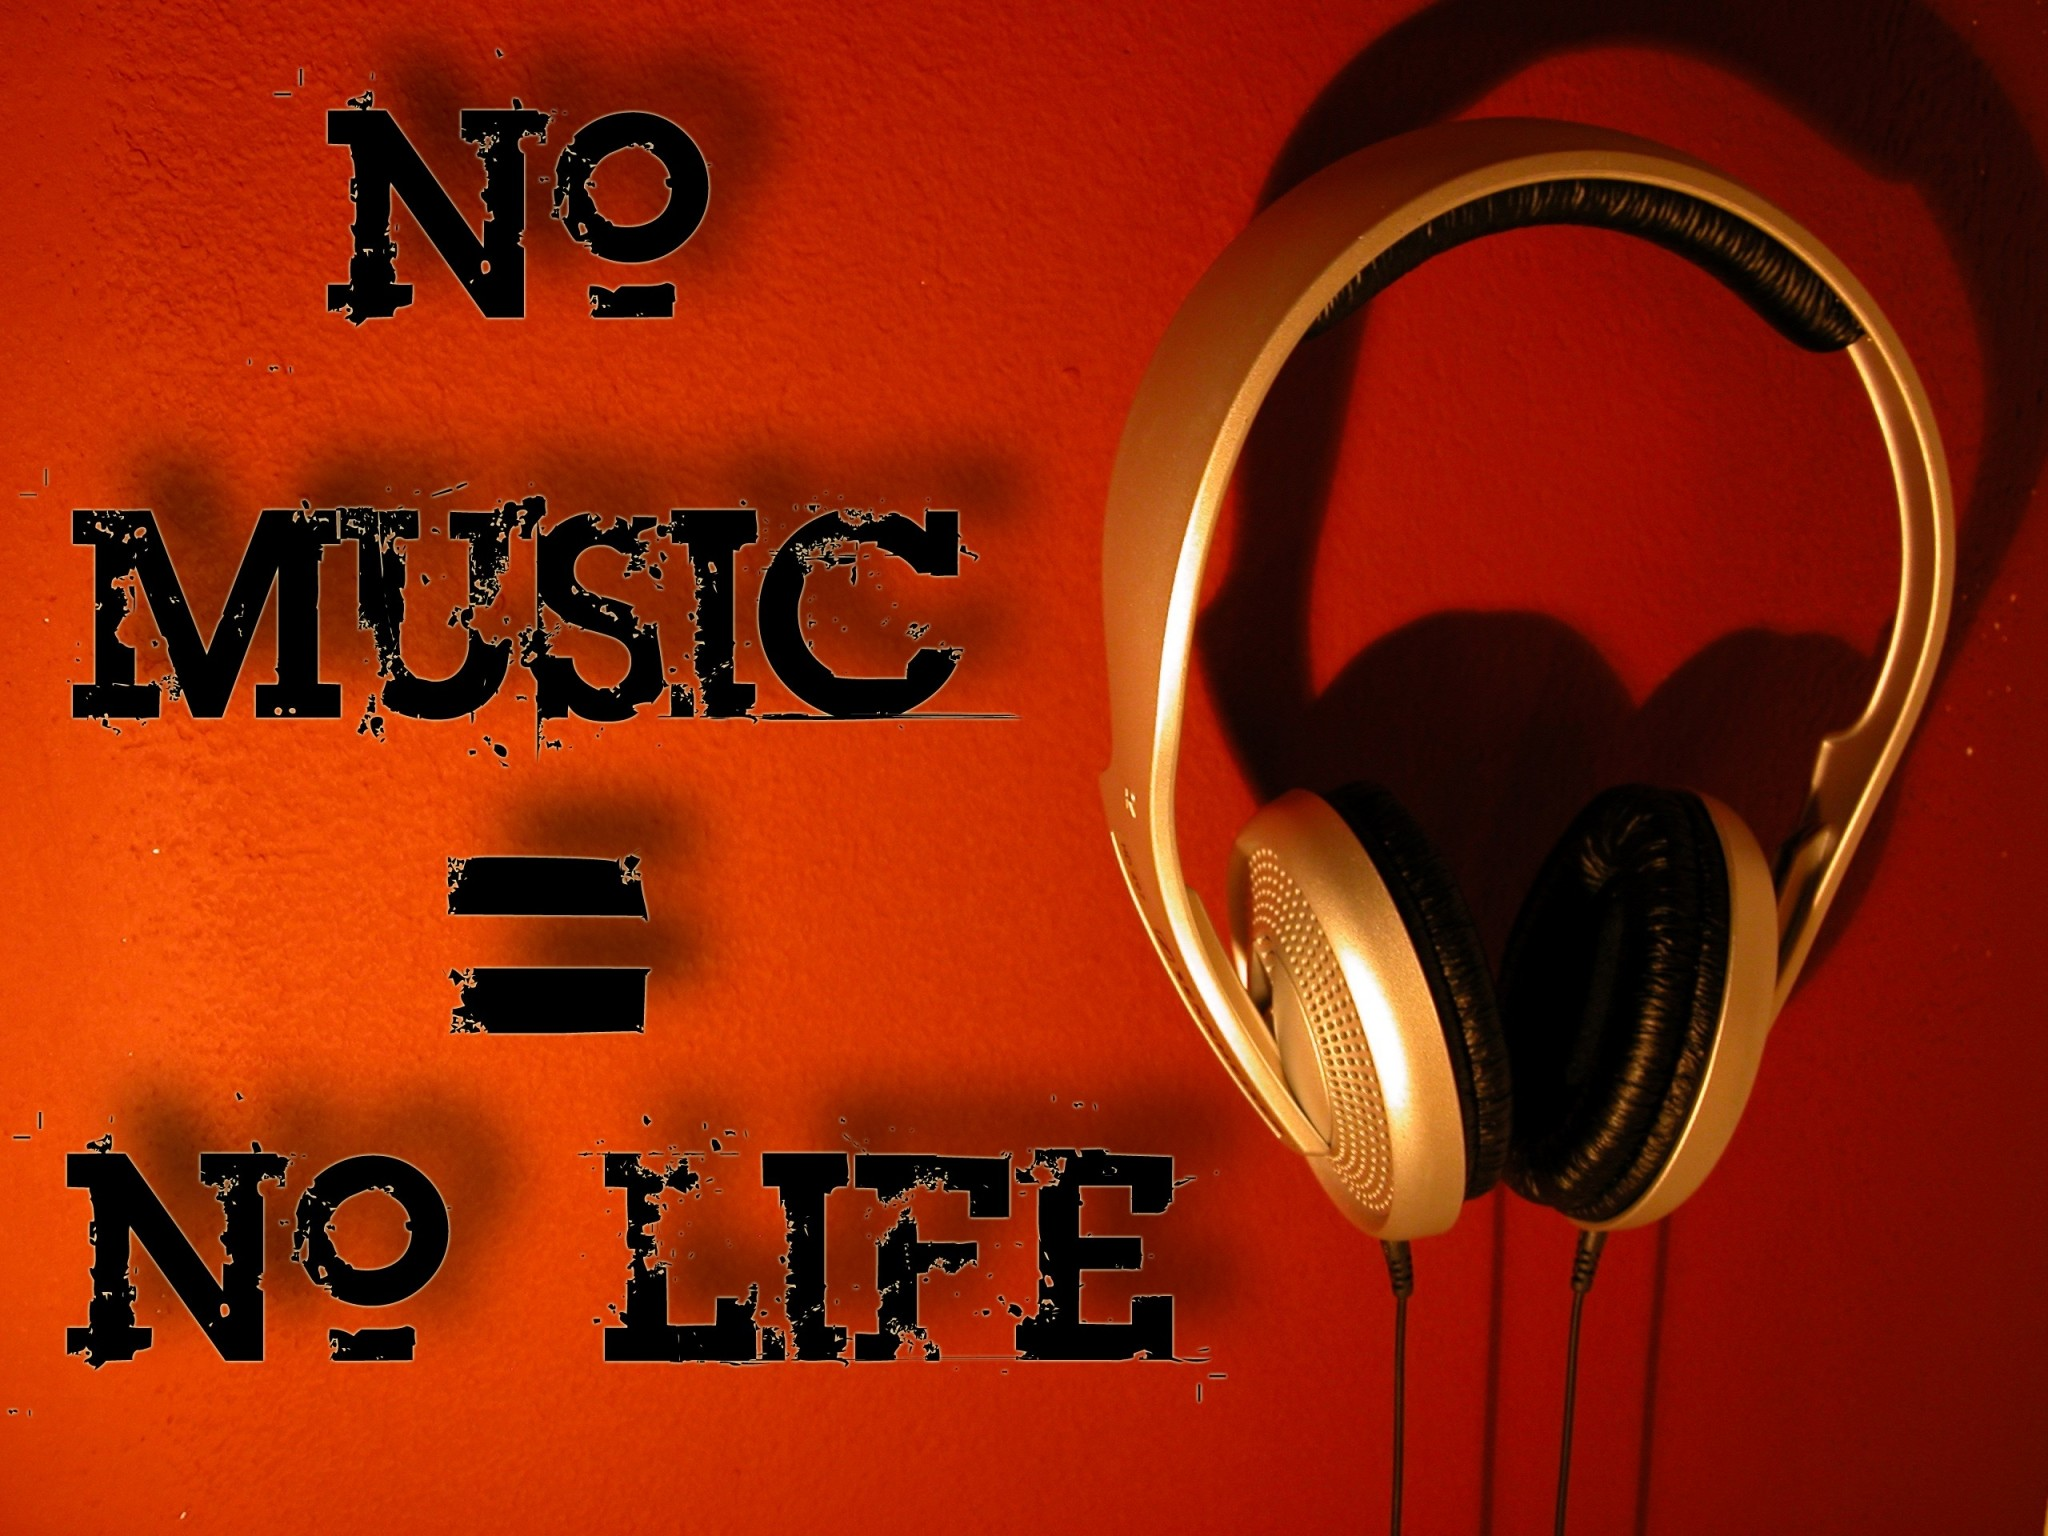 music free wallpaper images